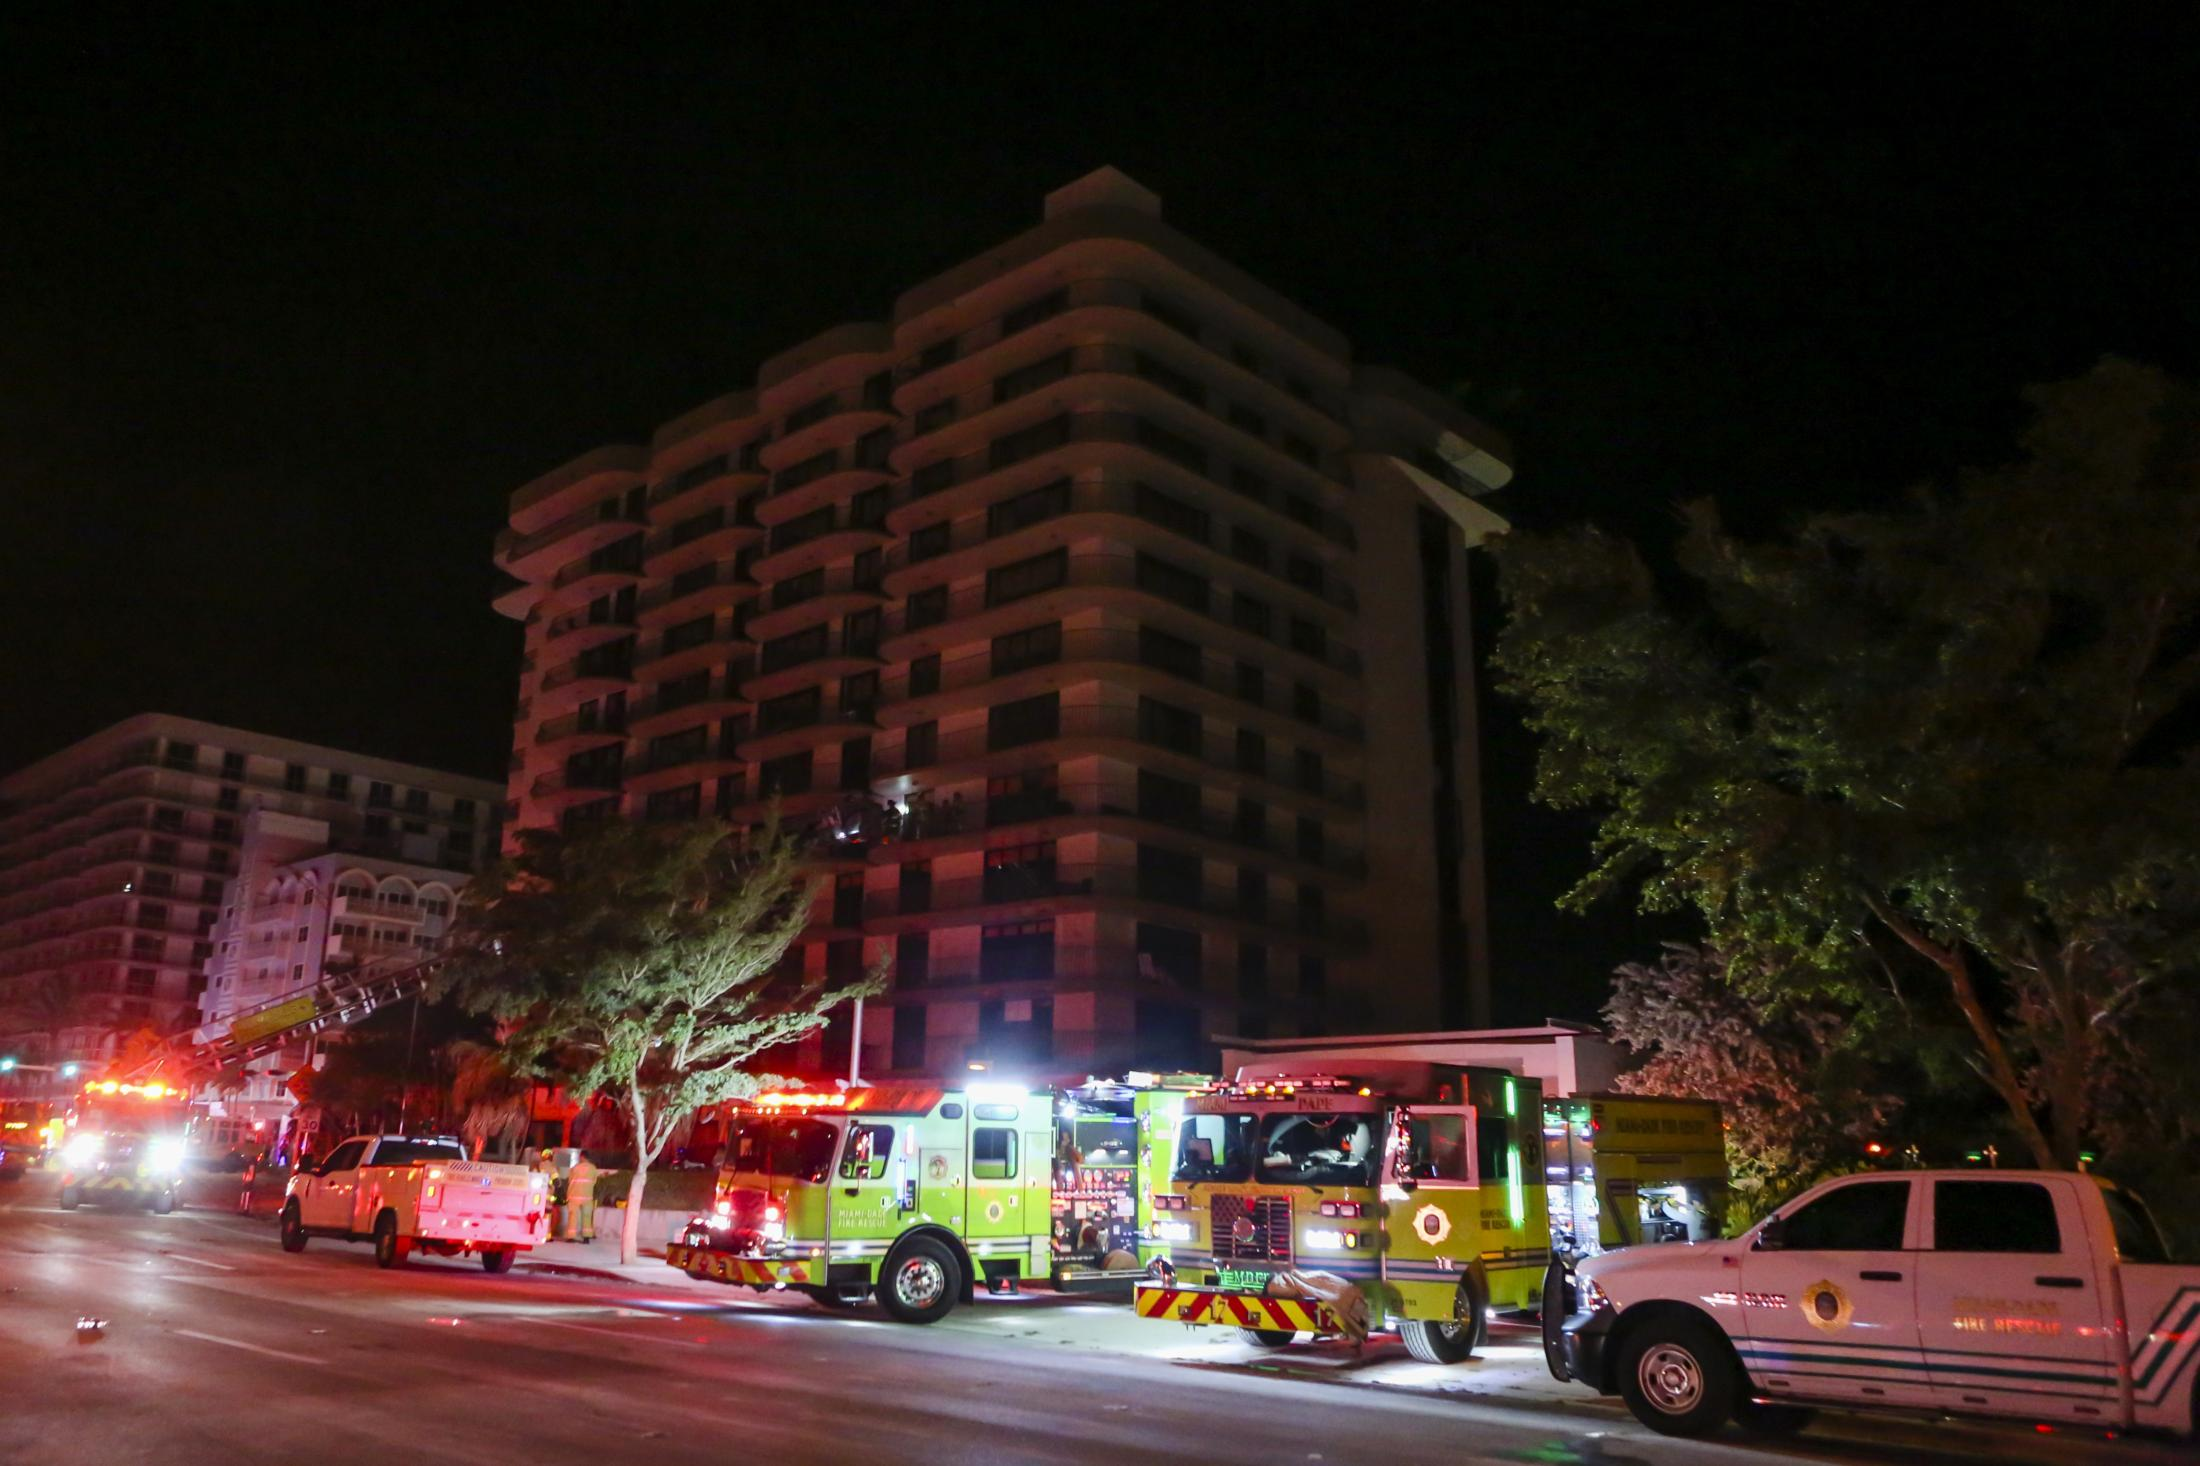 A rescue operation of a building partially collapse in Surfside, Florida, U.S., on Thursday, June 24, 2021. Photographer: Eva Marie Uzcategui/Bloomberg in Surfside, Florida, U.S., on Thursday, June 24, 2021. Photographer: Eva Marie Uzcategui